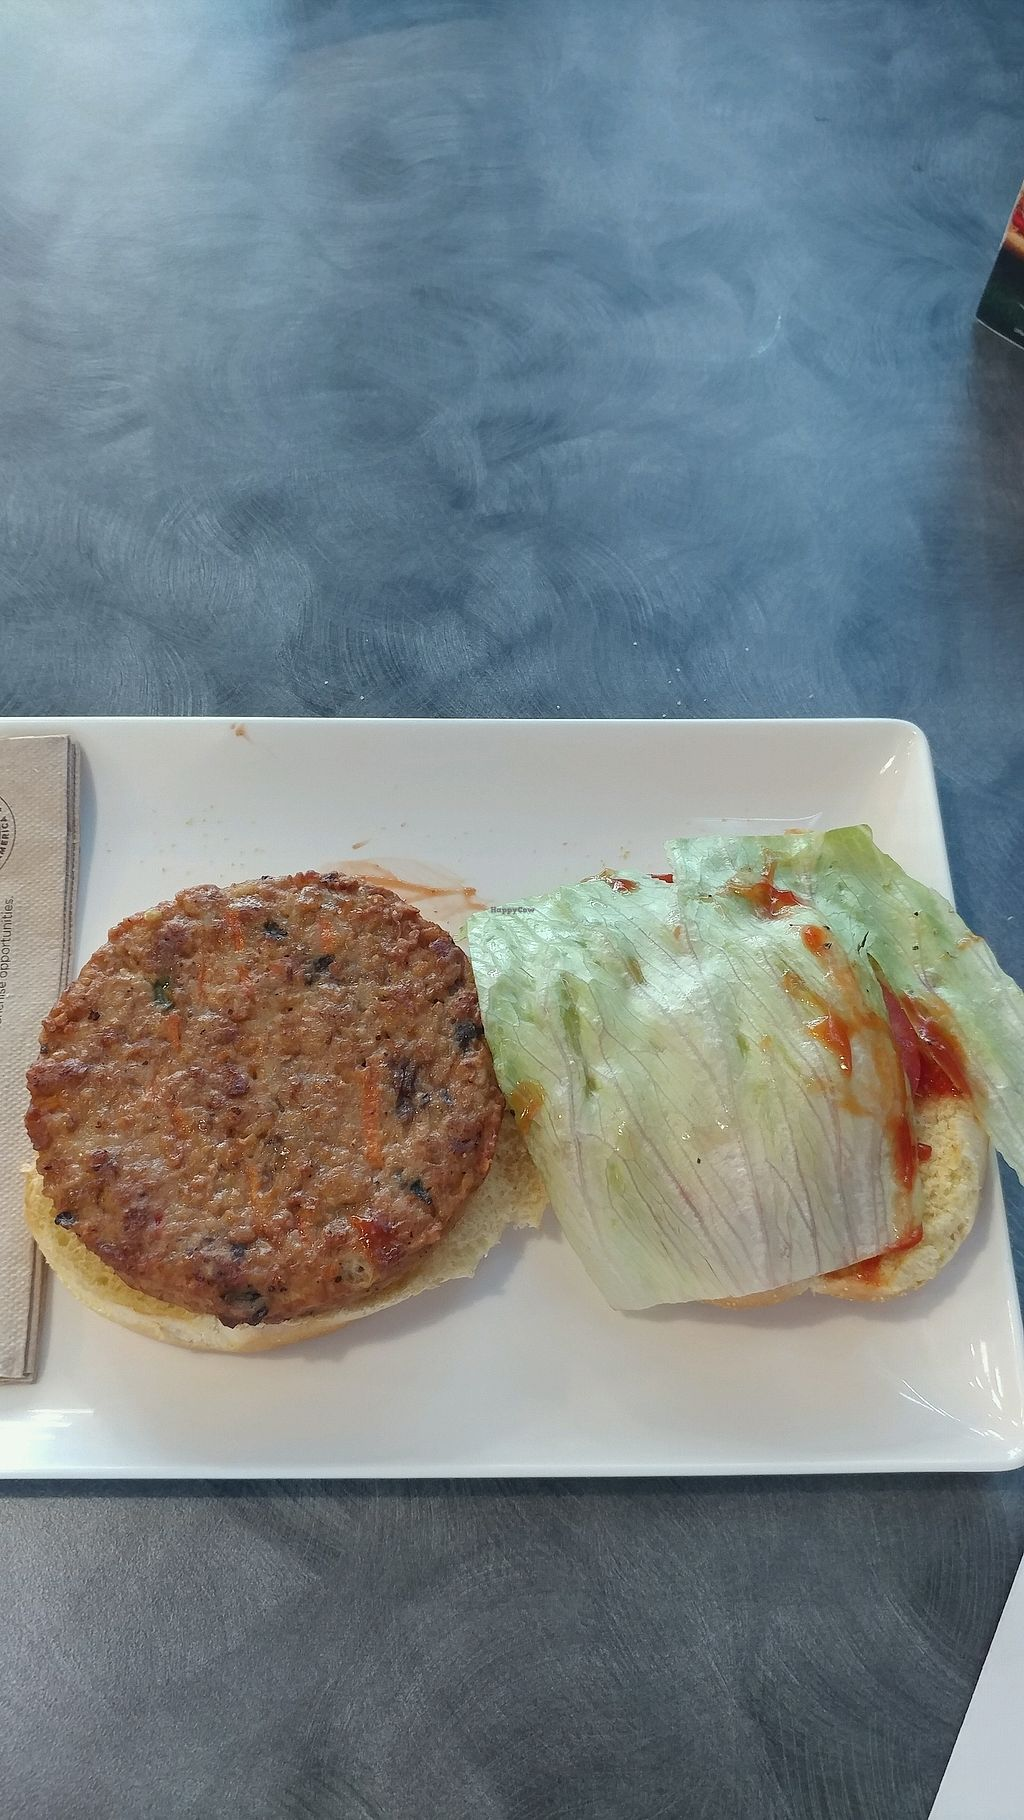 """Photo of Capriotti's Sandwich Shop  by <a href=""""/members/profile/mster9ball1"""">mster9ball1</a> <br/>again this is a veggie burger <br/> September 18, 2017  - <a href='/contact/abuse/image/82834/305814'>Report</a>"""